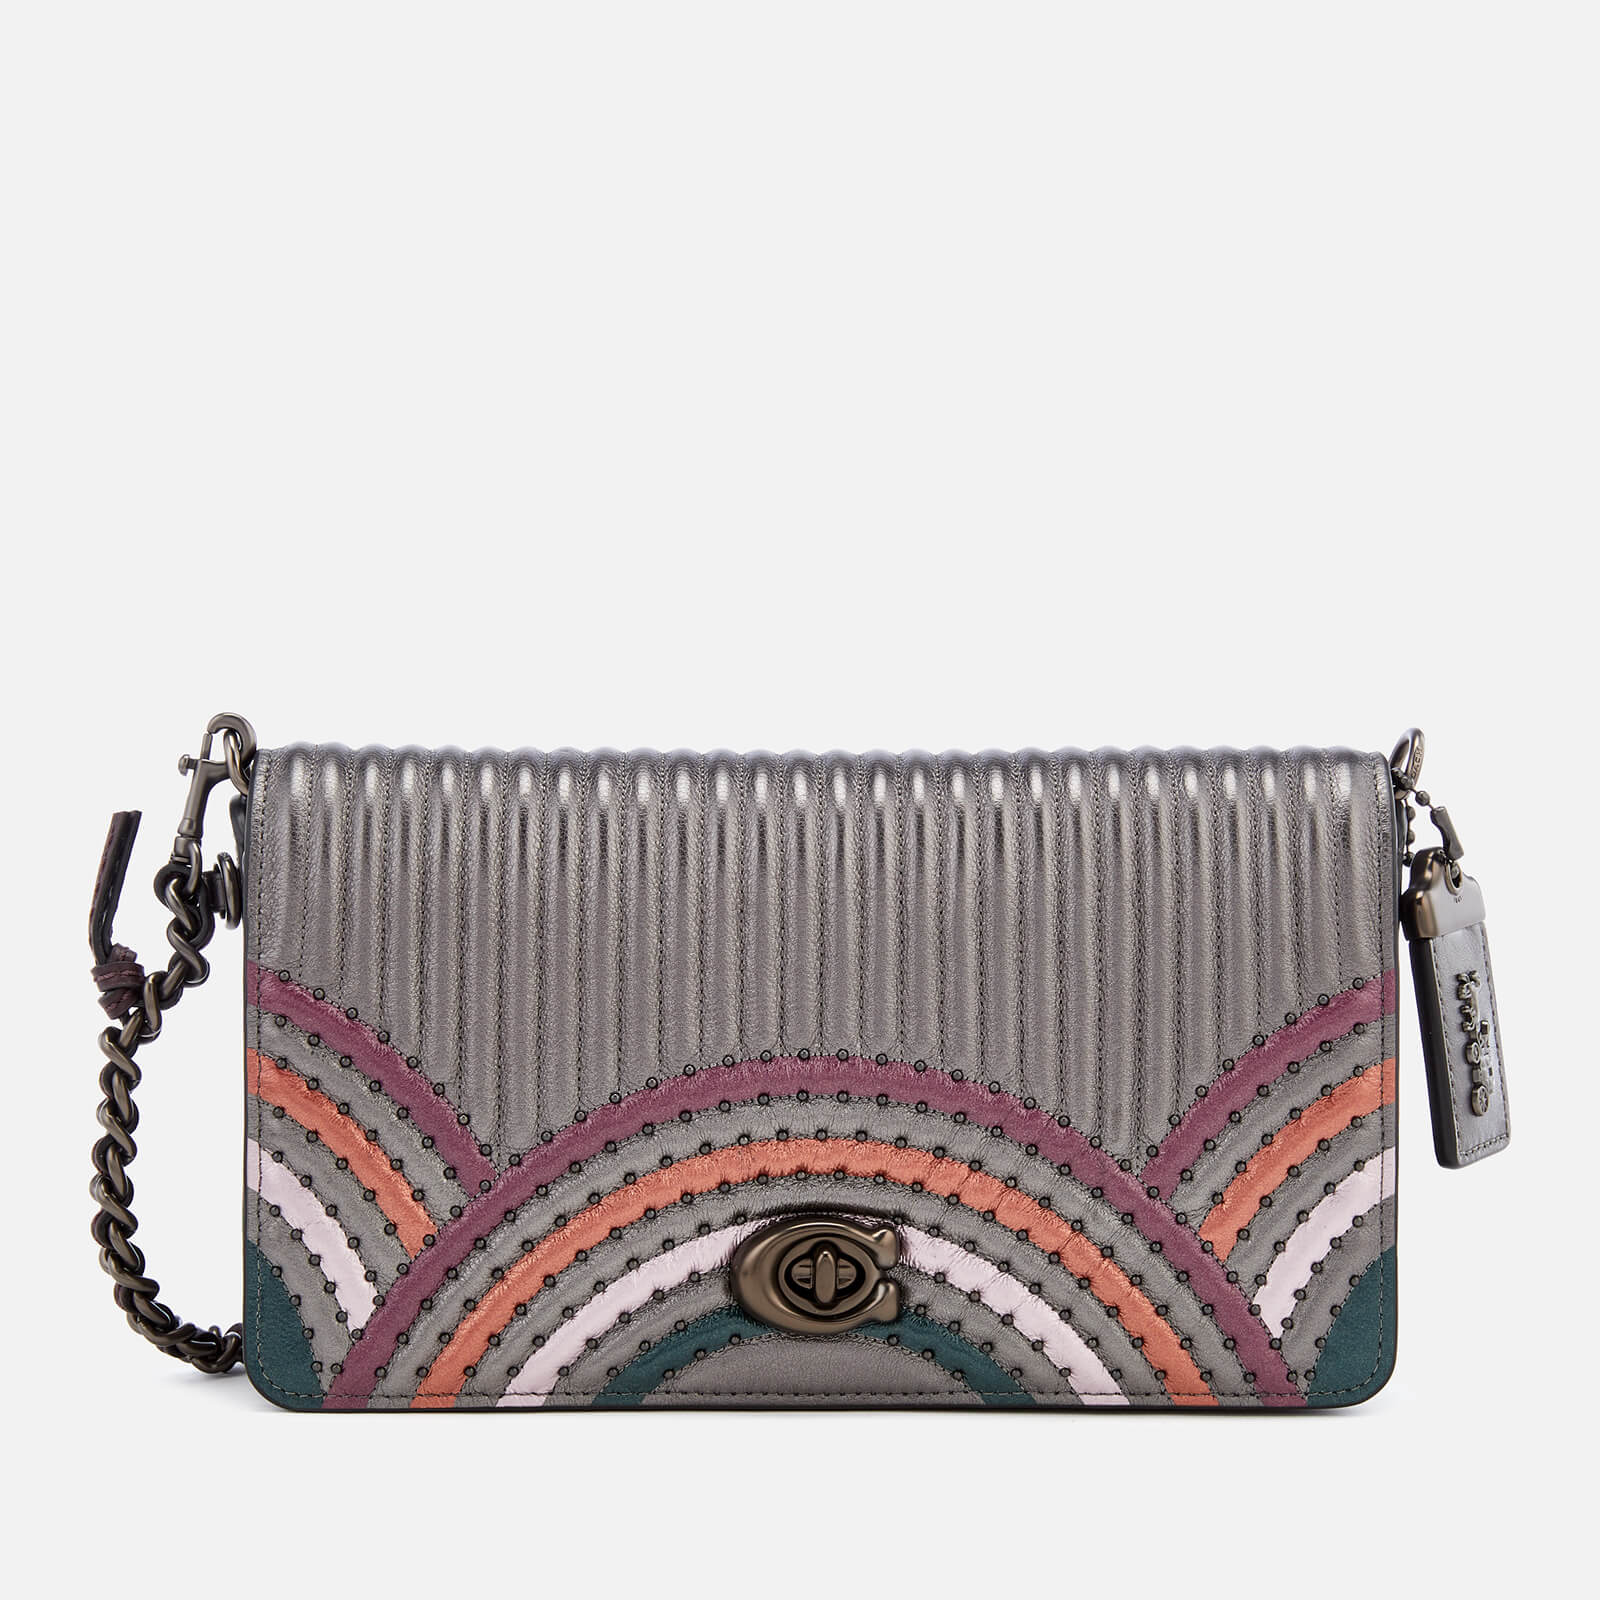 Mon Coach Deco coach women's dinky bag with colorblock deco quilting and rivets - metallic  graphite multi